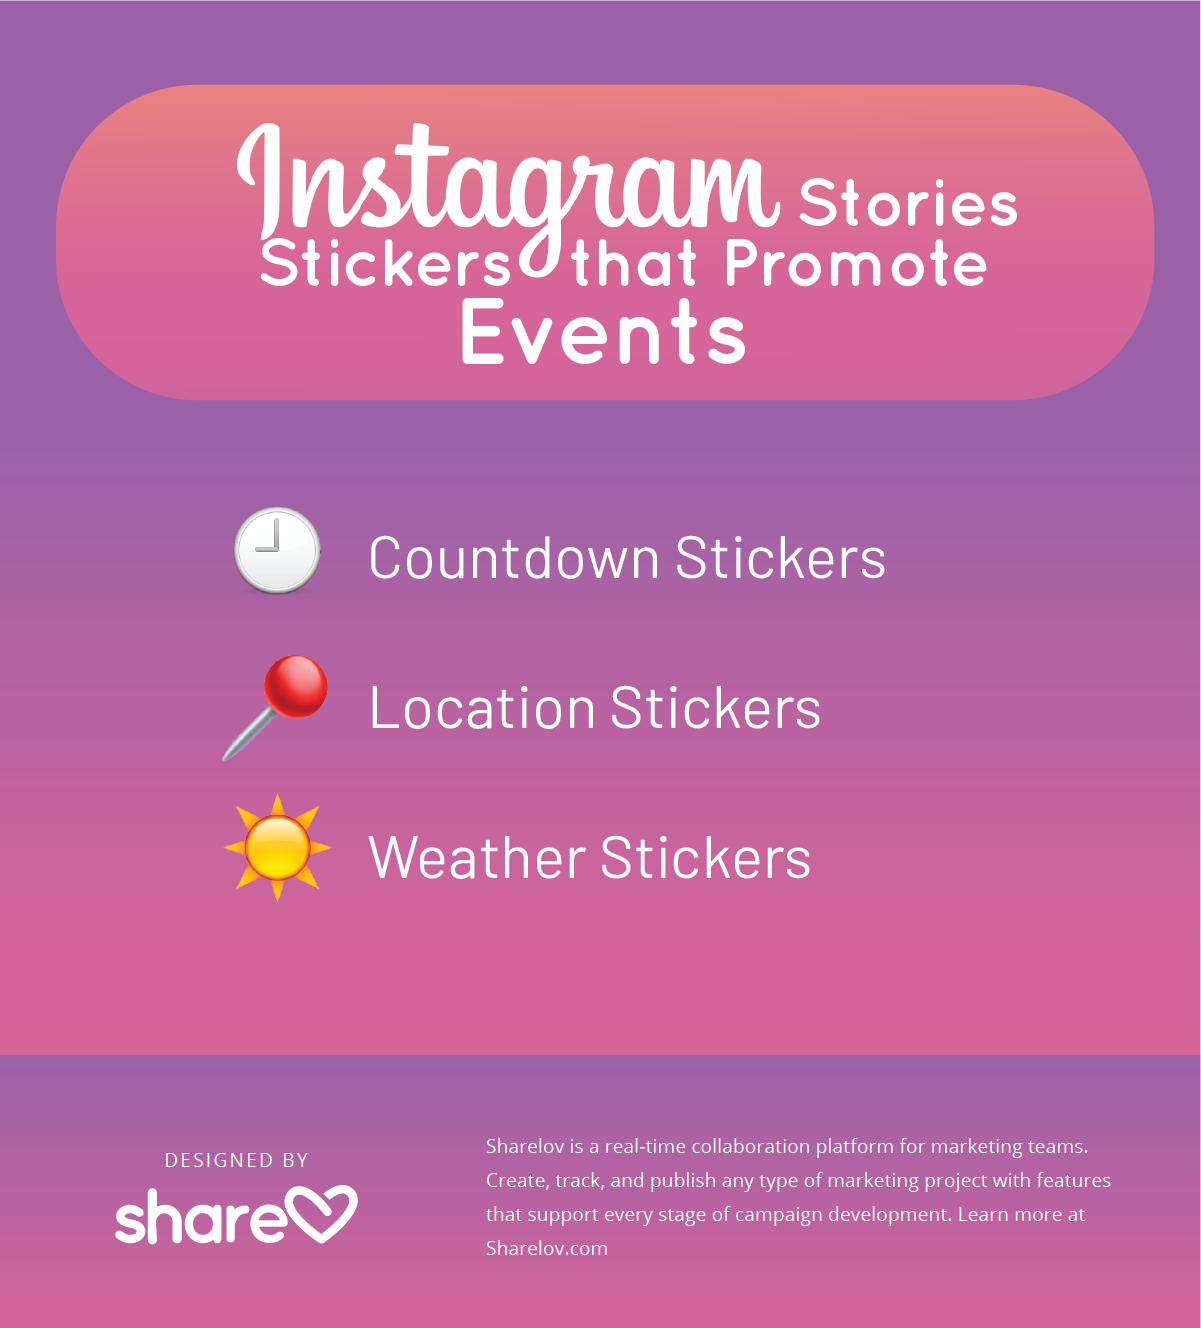 Instagram Stories Stickers that Promote Events